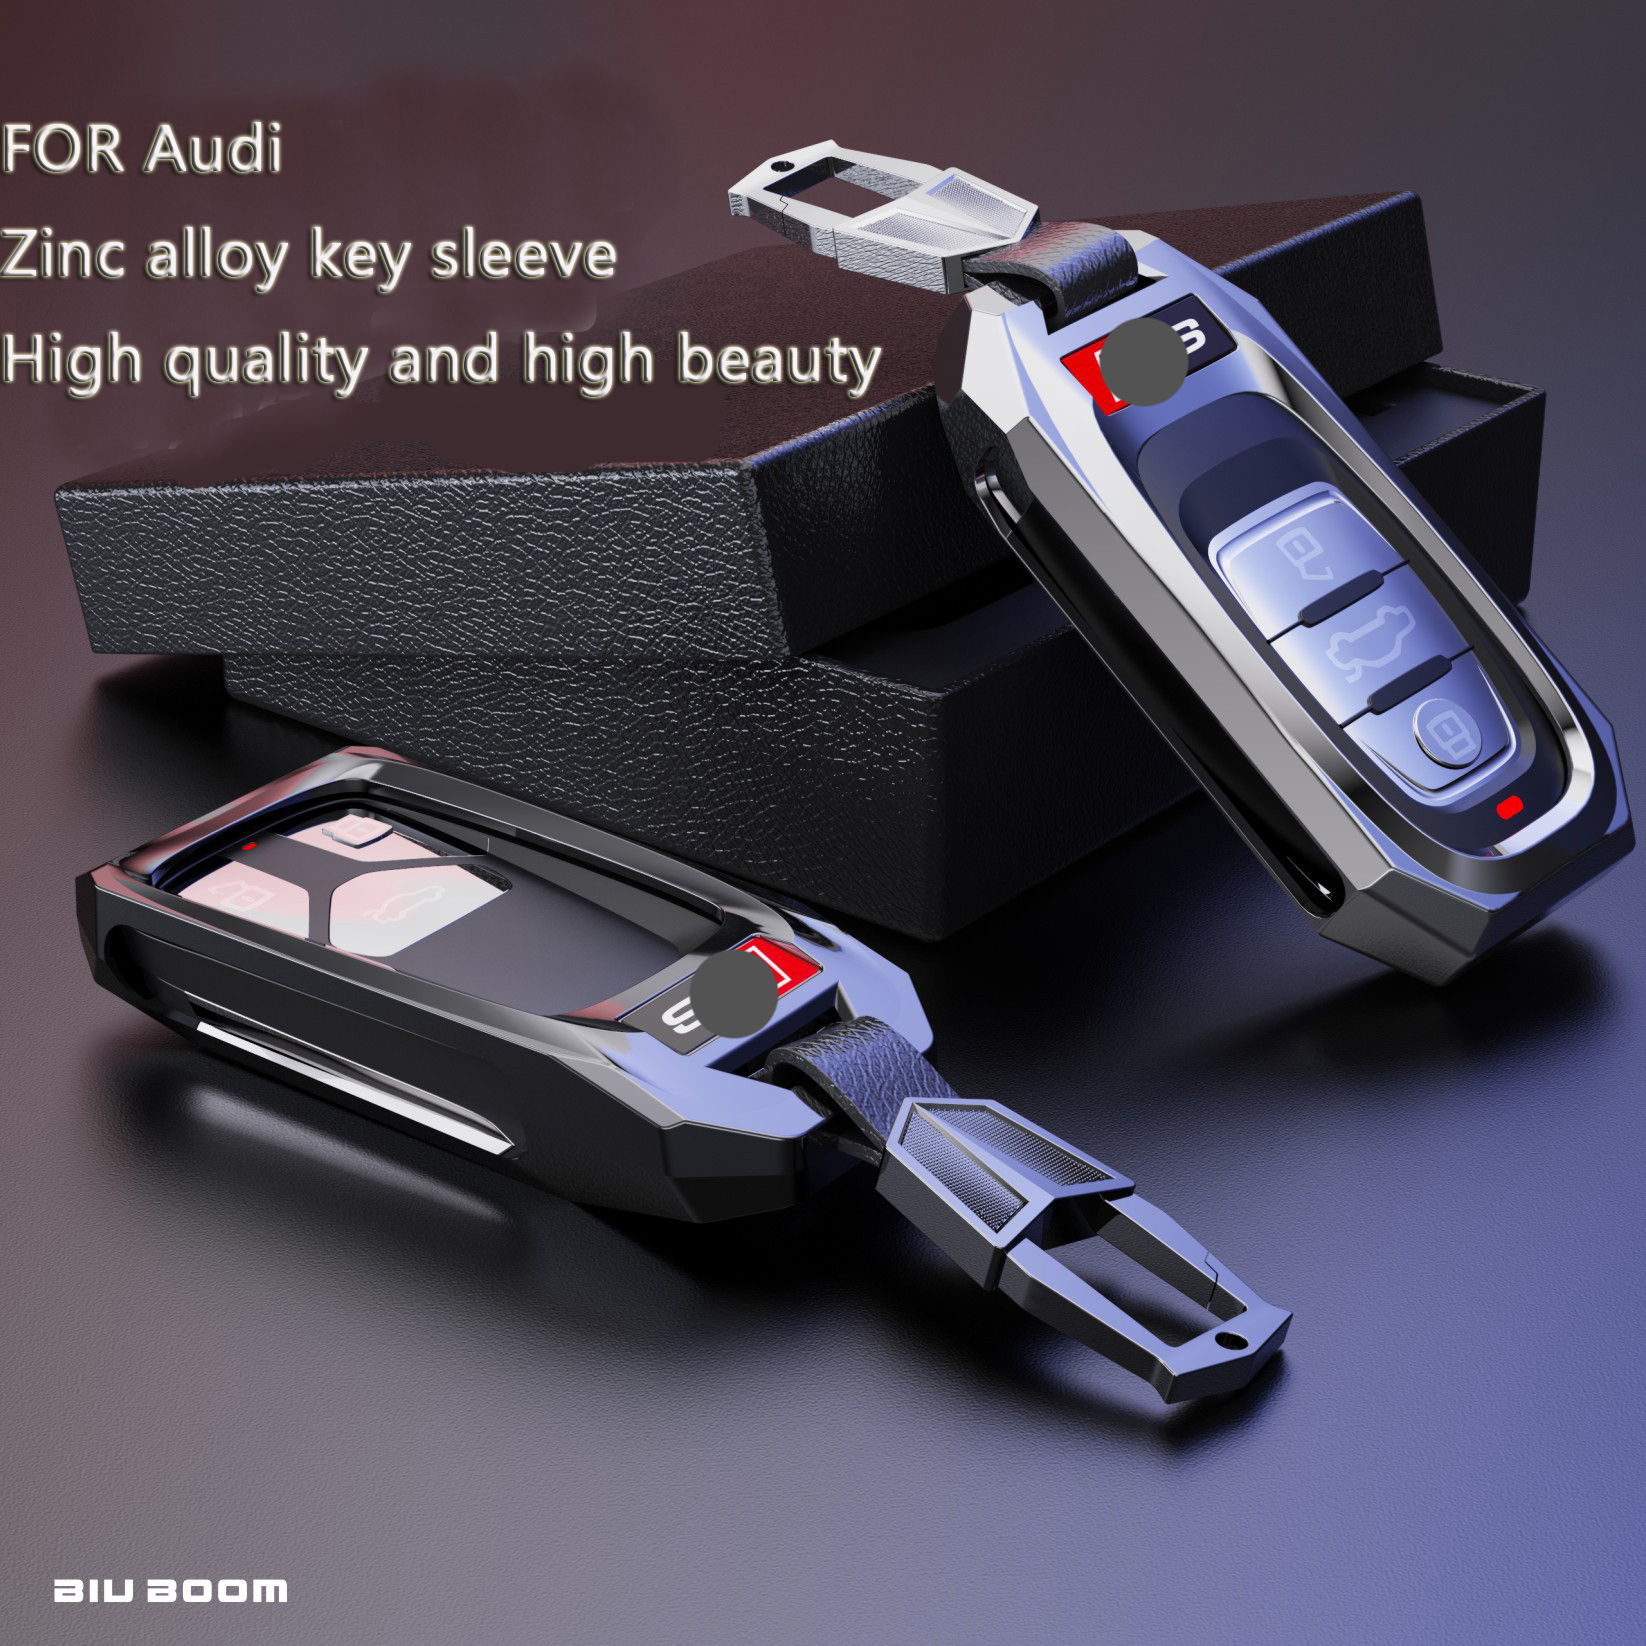 Remote Smart Key Shell Case For AUDI A3/A4/A6L Q5 / Q7 / S3 / RS8  Zinc Alloy Protection Key Shell Accessories Smart Cover Case